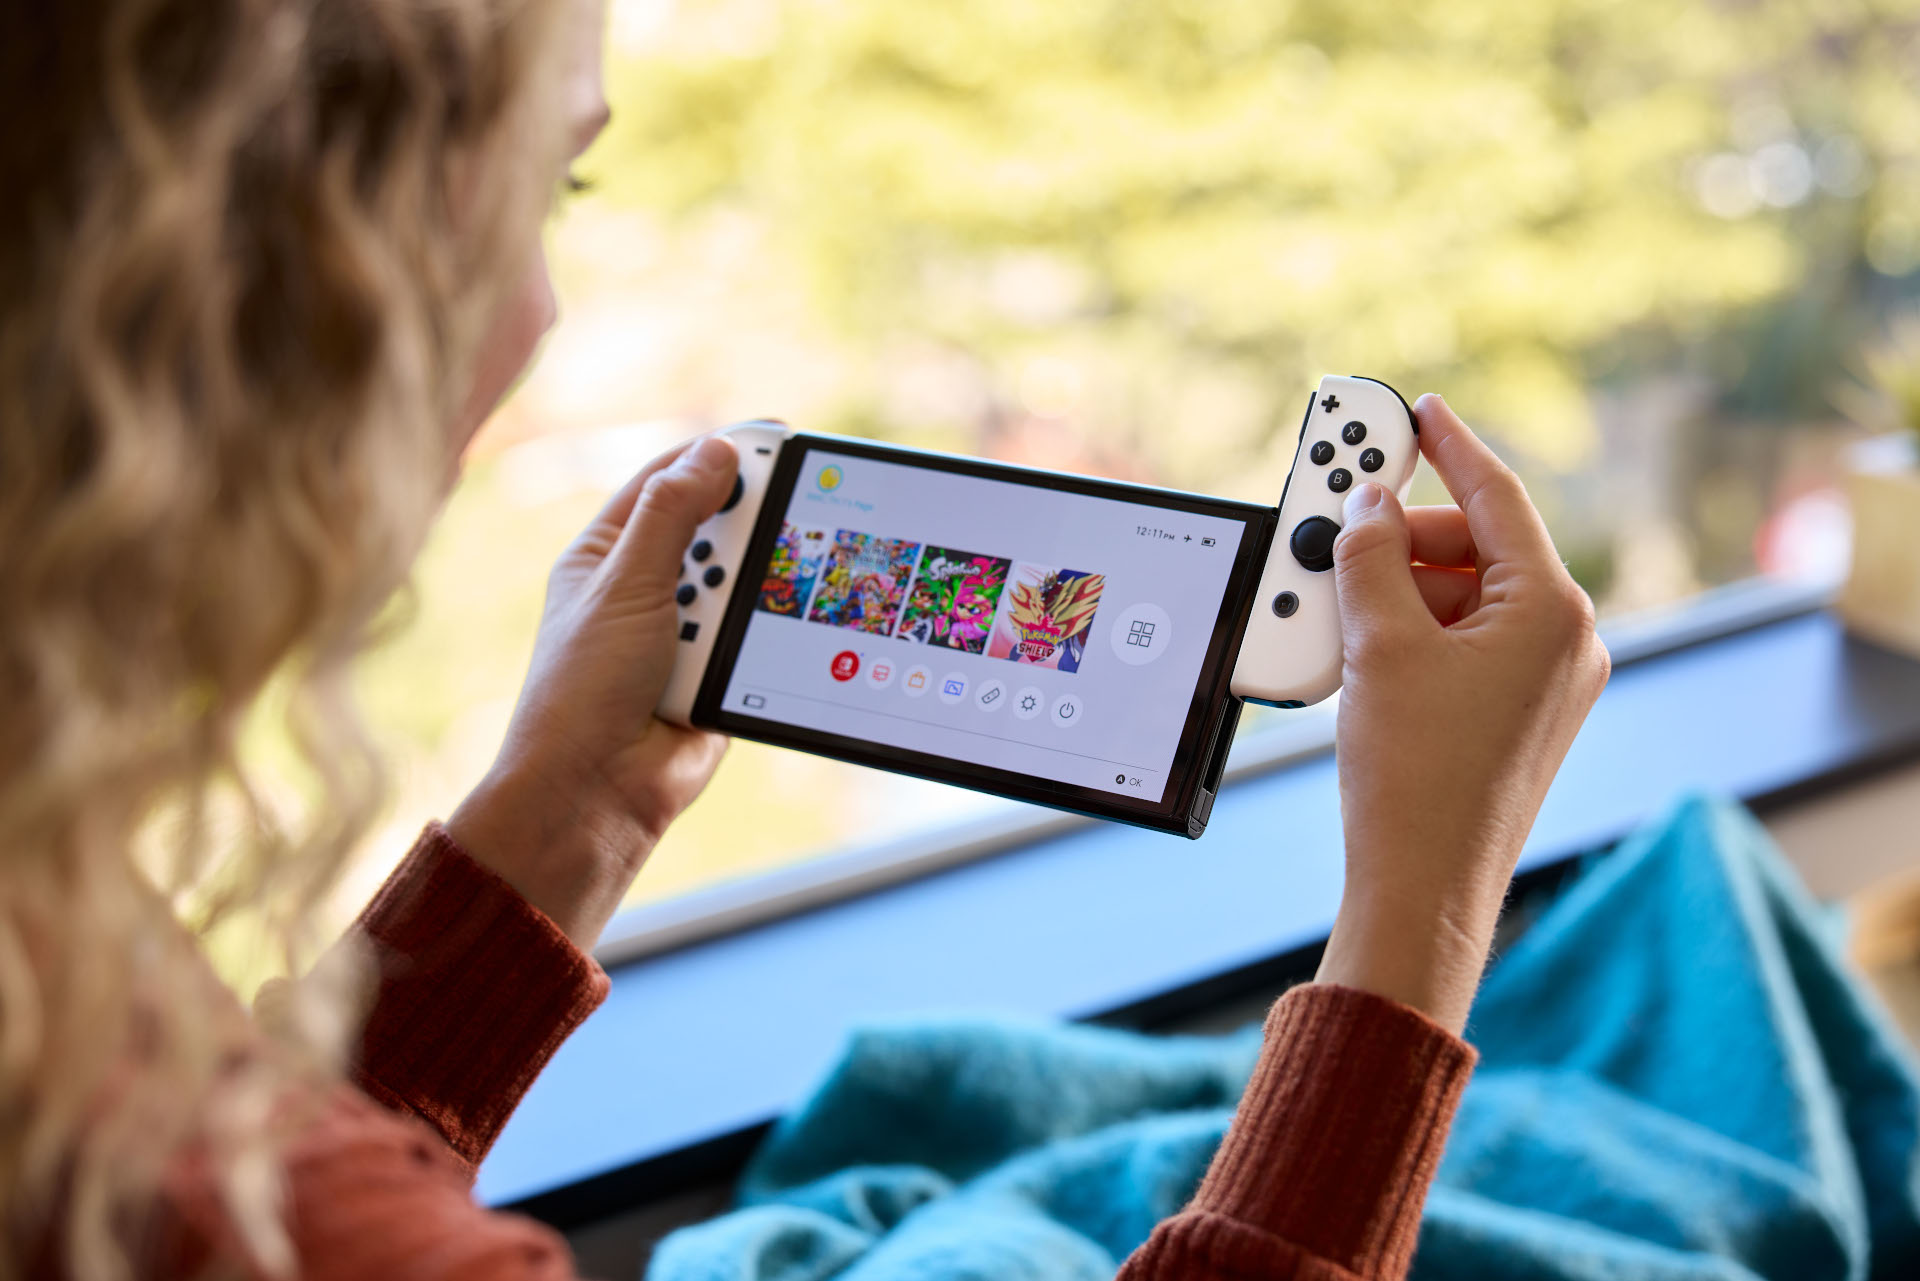 Switch oled review image 01